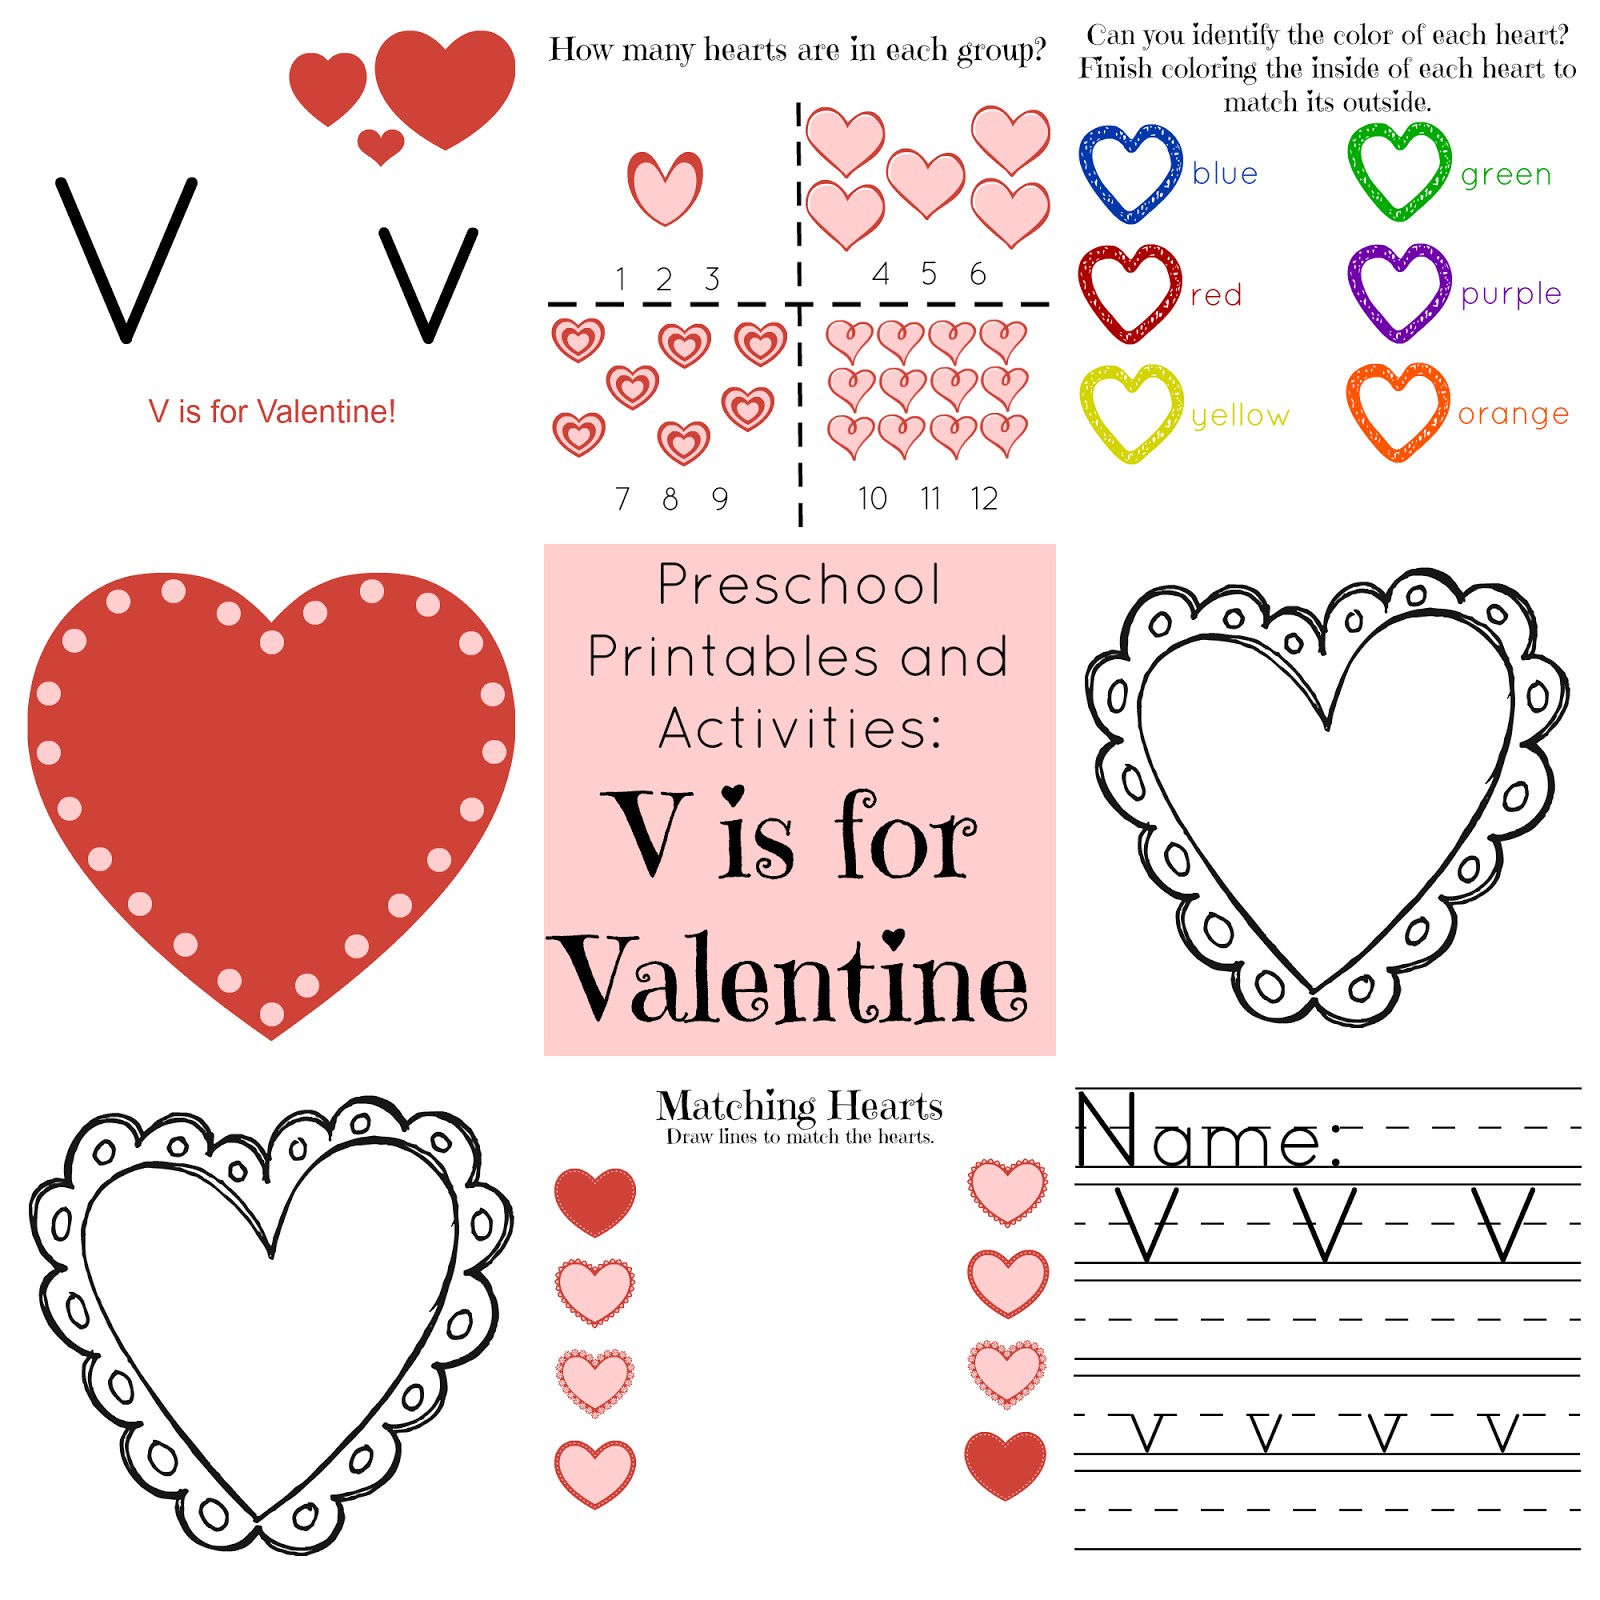 V is for Valentine Preschool Printables and Activities   Valentine\'s ...